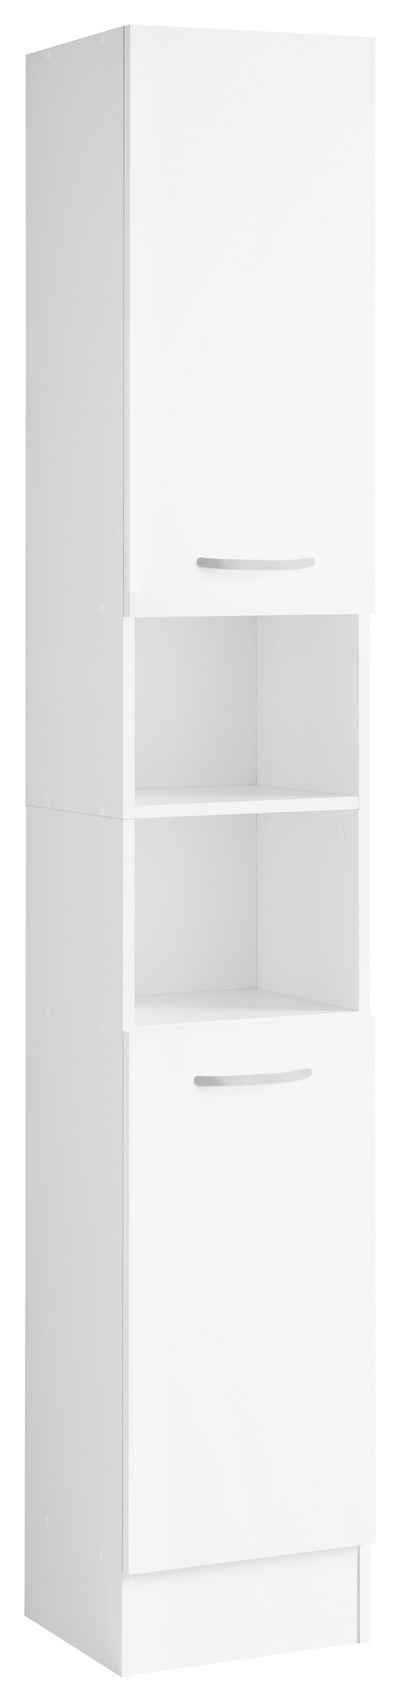 hochschrank 30 cm breit schrank cm breit with hochschrank 30 cm breit affordable gallery of. Black Bedroom Furniture Sets. Home Design Ideas